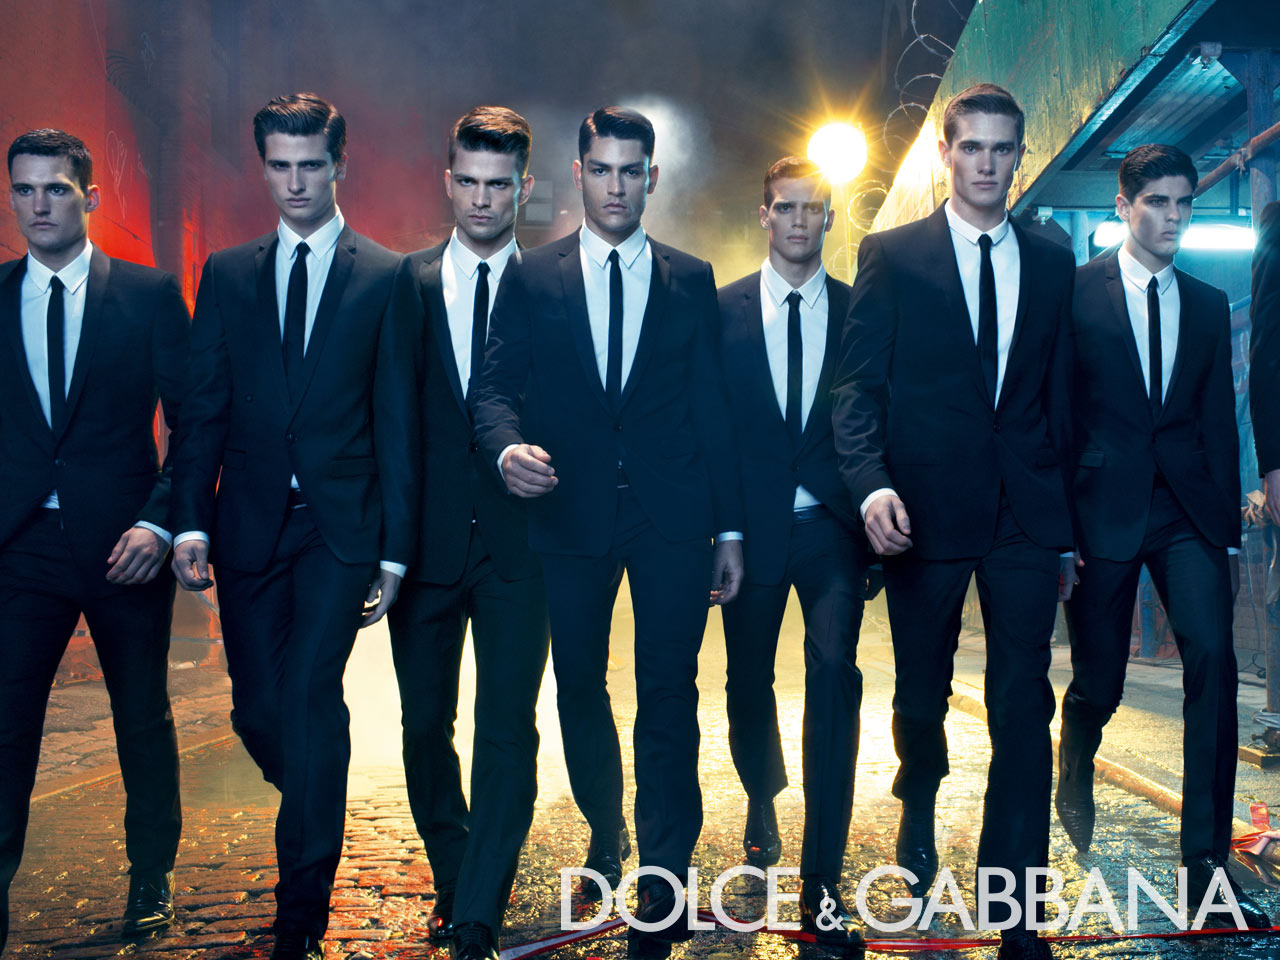 COOL WALLPAPERS: Dolce & Gabbana